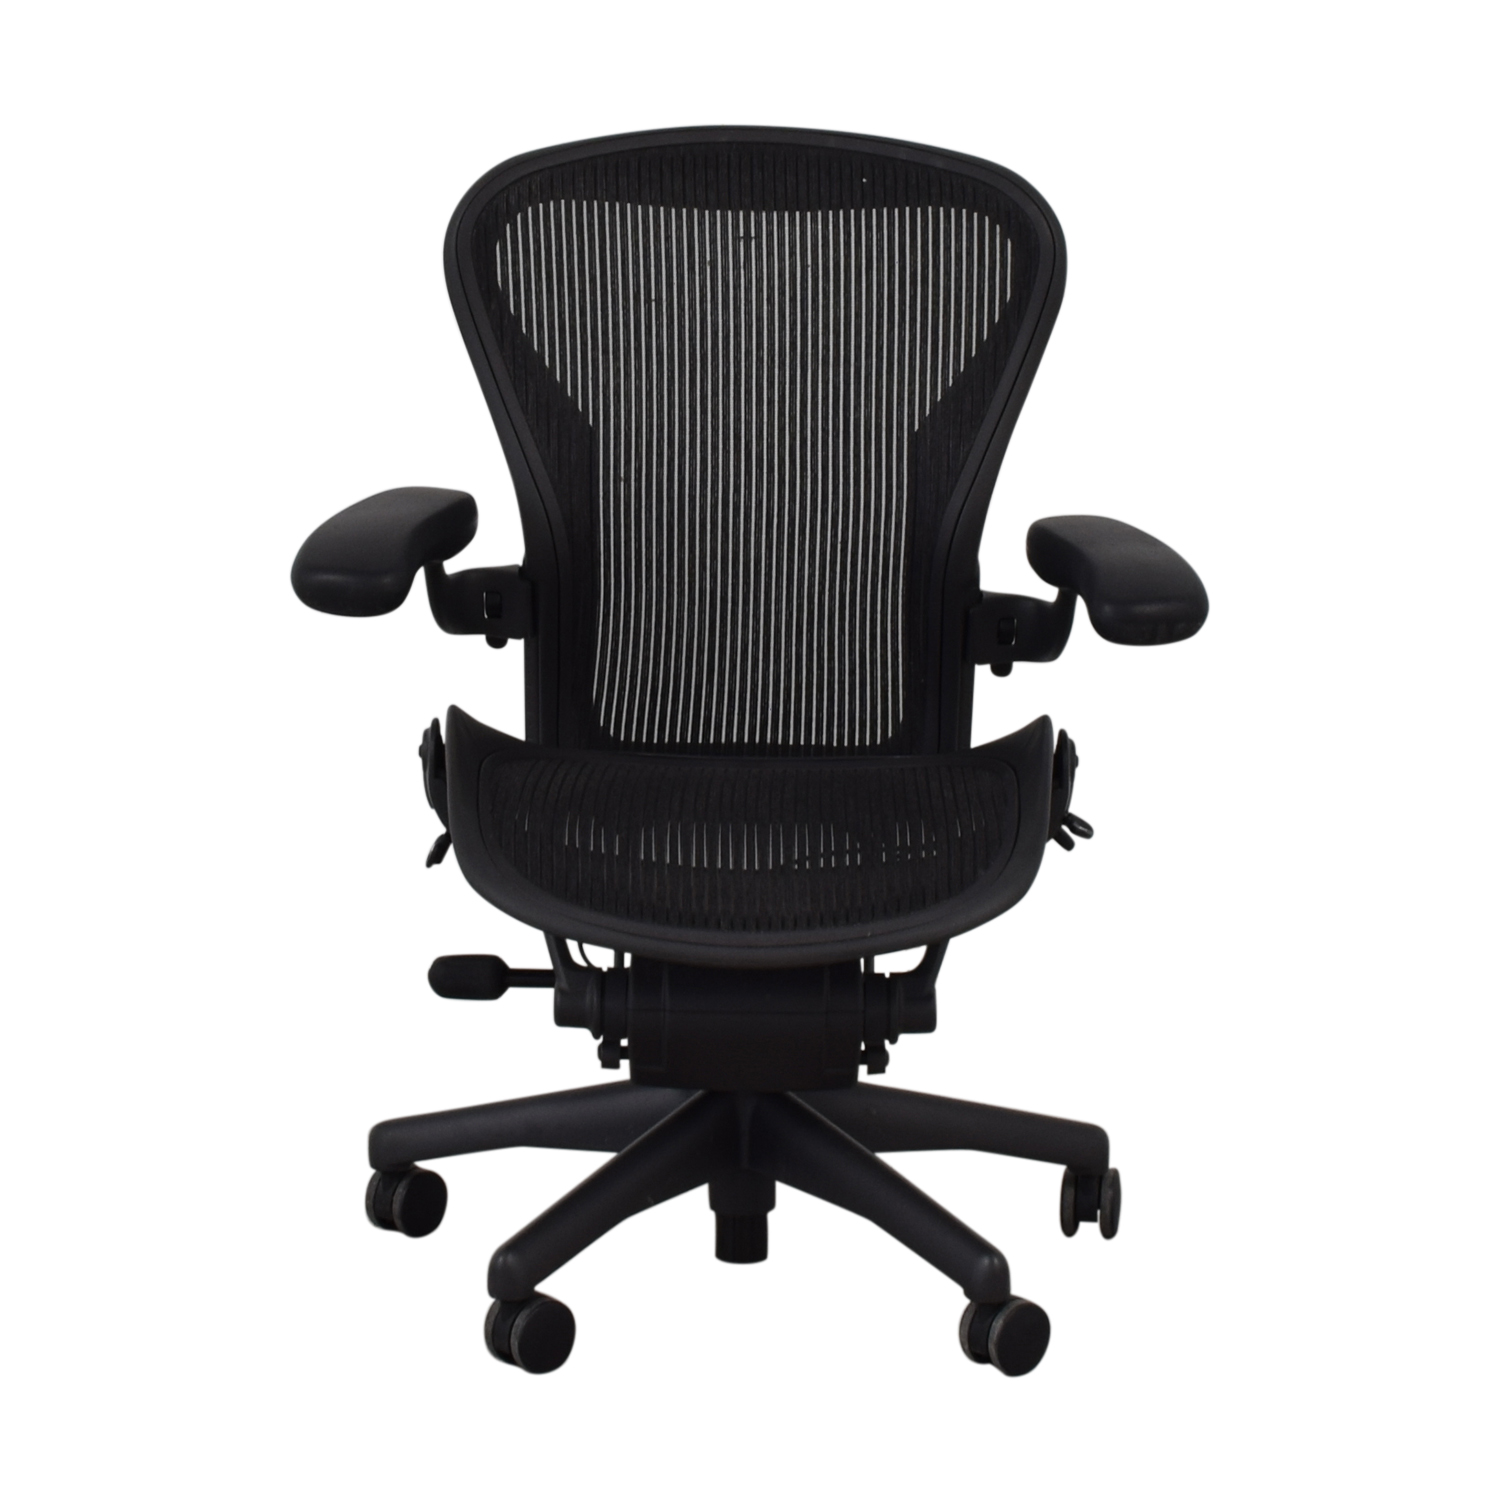 Herman Miller Herman Miller Aeron Size B Black Office Desk Chair Chairs